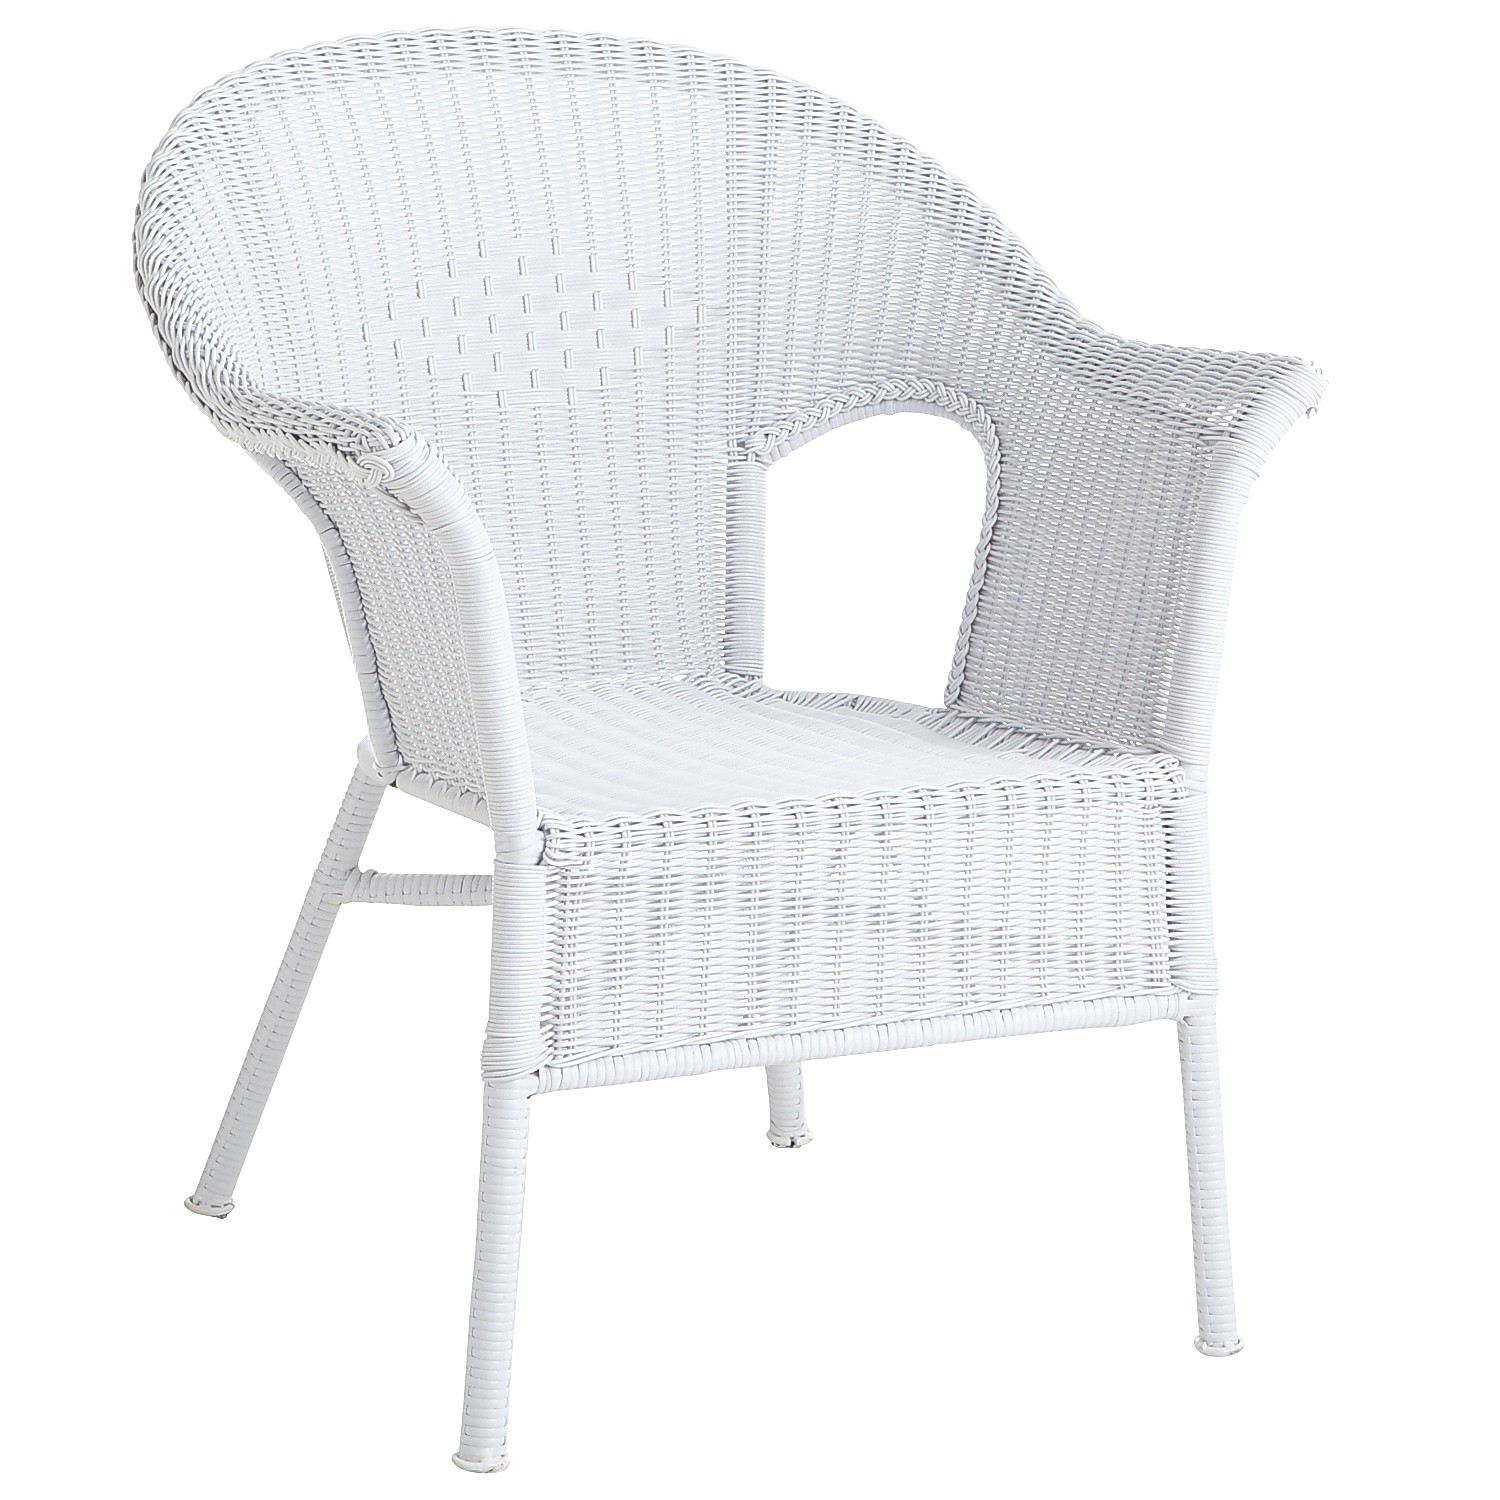 Casbah White Stacking Chair